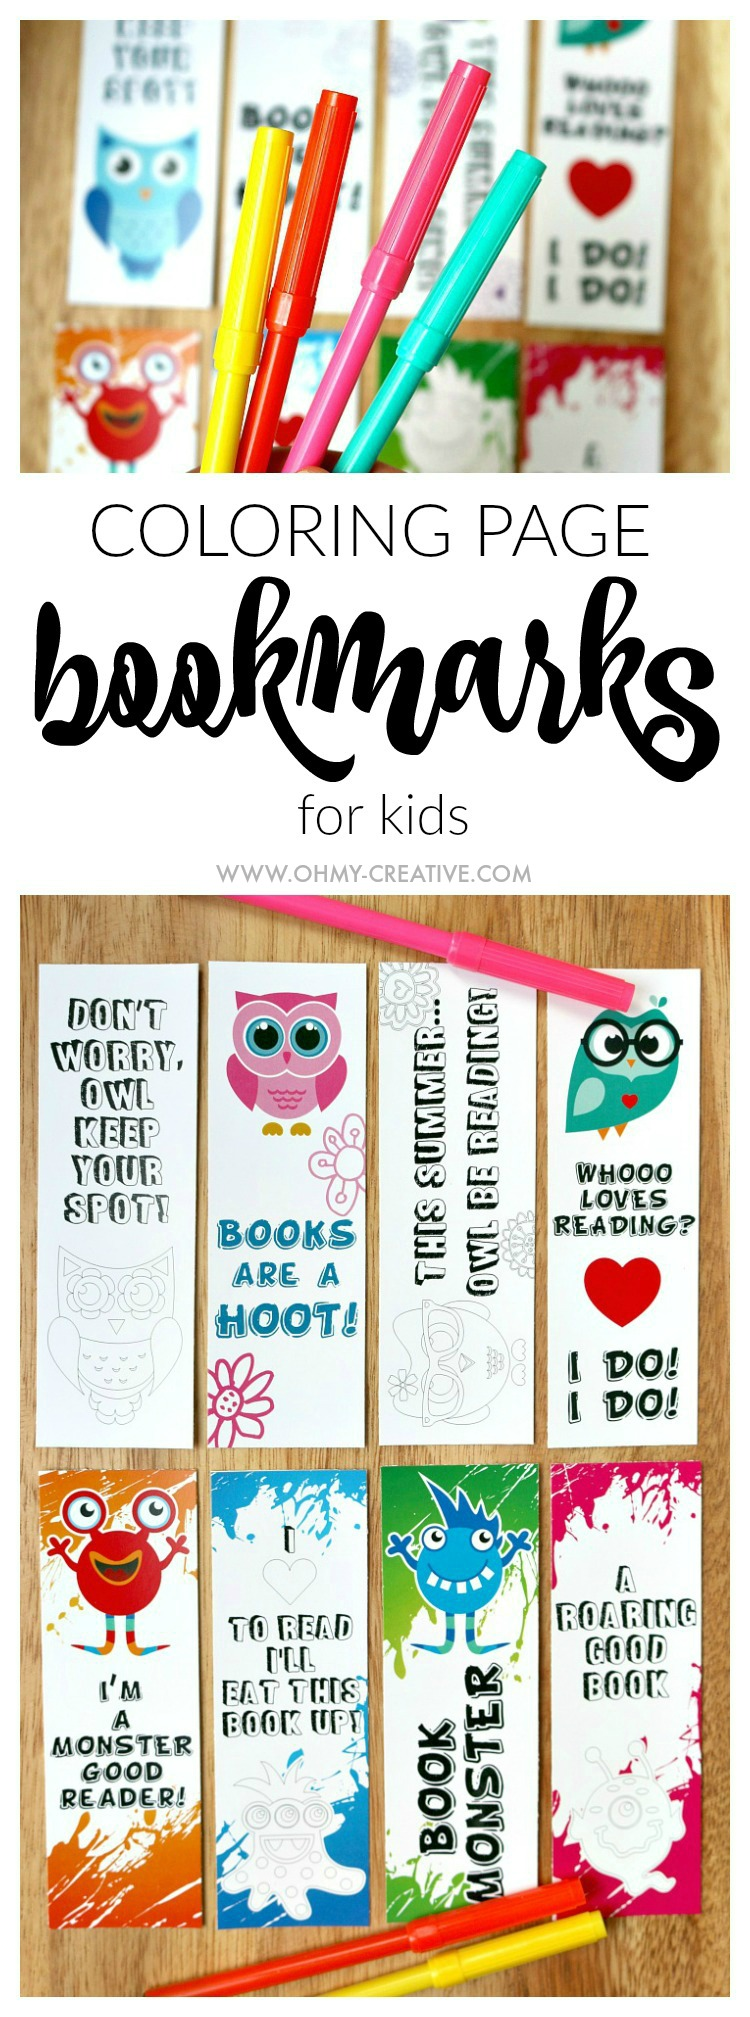 Free coloring pages for reading - Use These Adorable Free Printable Bookmark Coloring Pages To Get The Kids Interested In Reading And